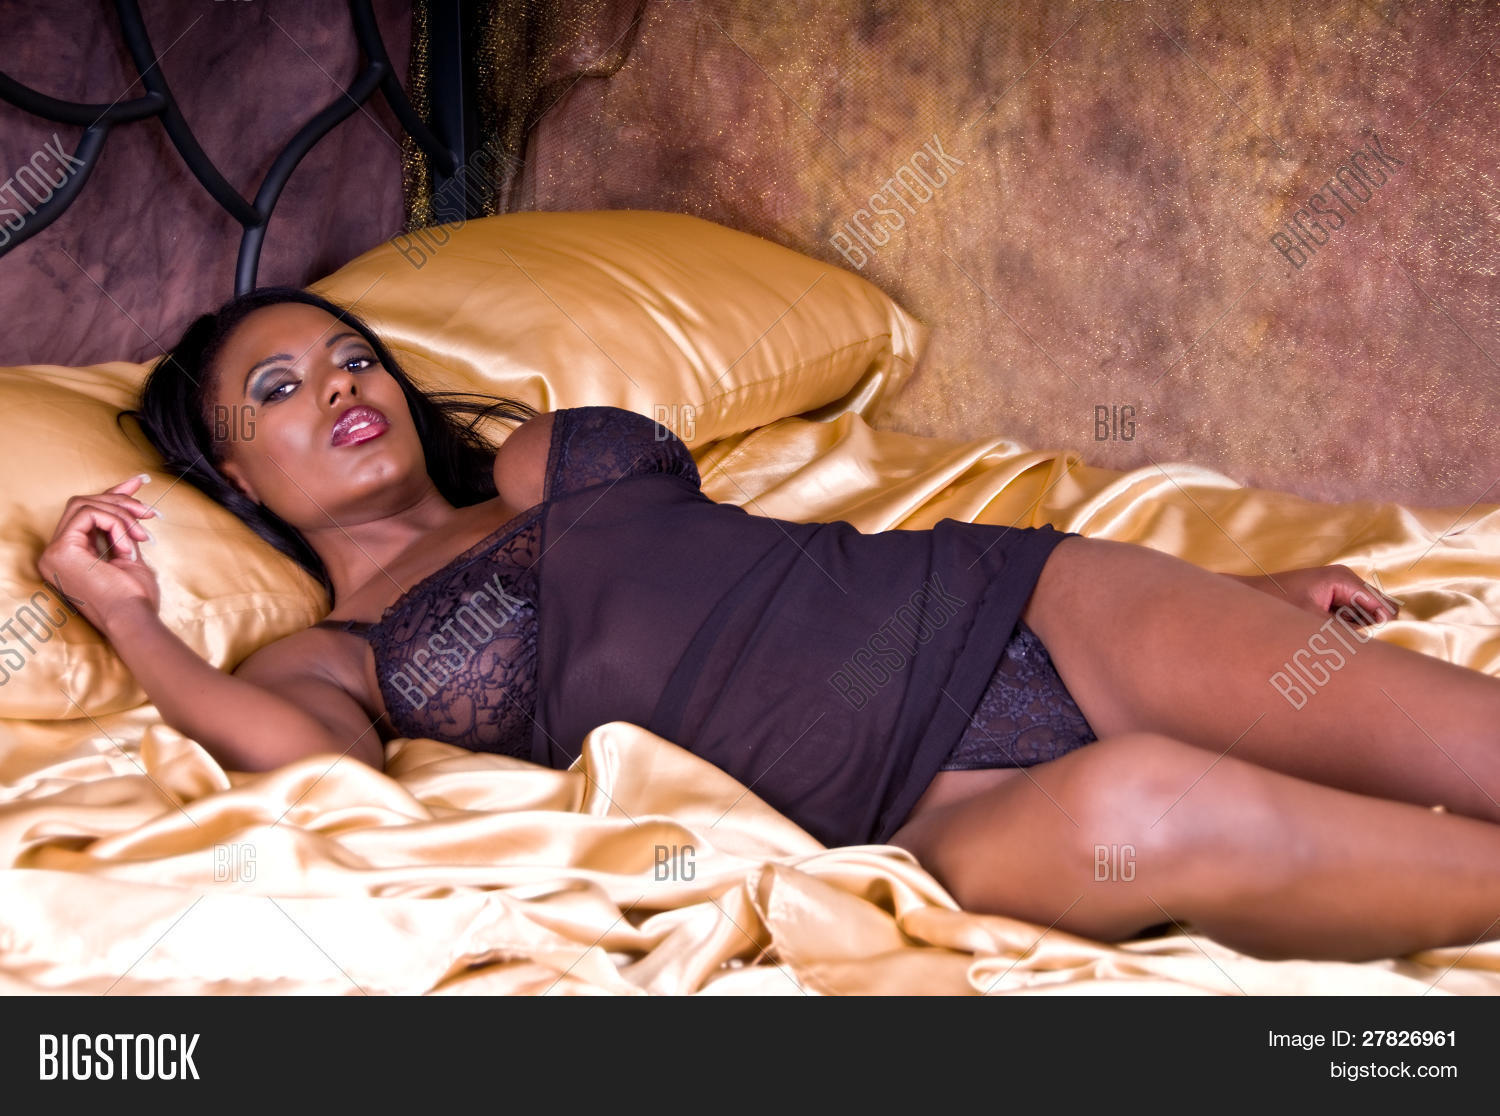 african woman black large breasts